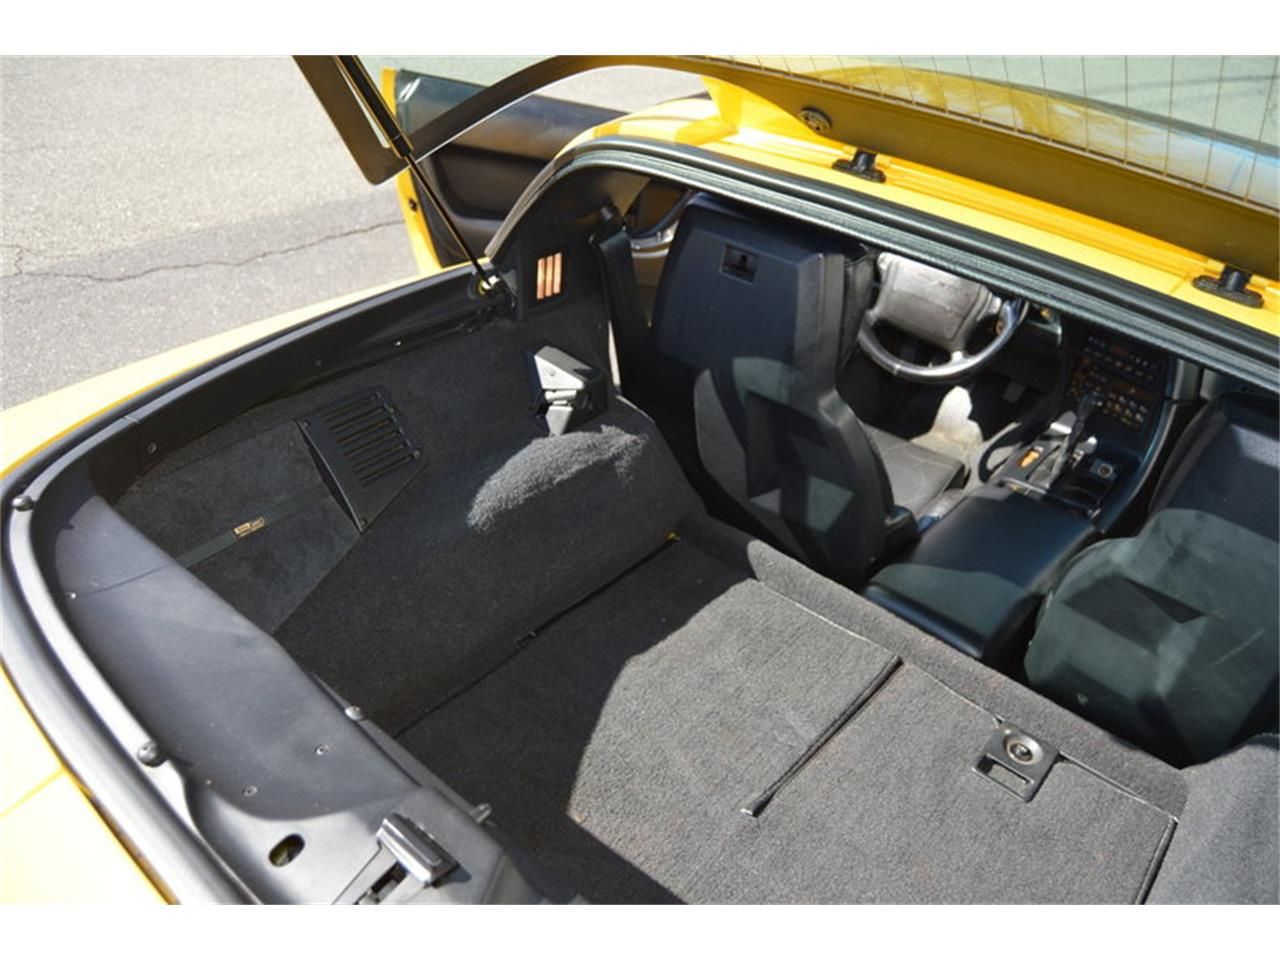 Large Picture of 1993 Chevrolet Corvette located in Massachusetts - $8,990.00 Offered by Mutual Enterprises Inc. - MZK6